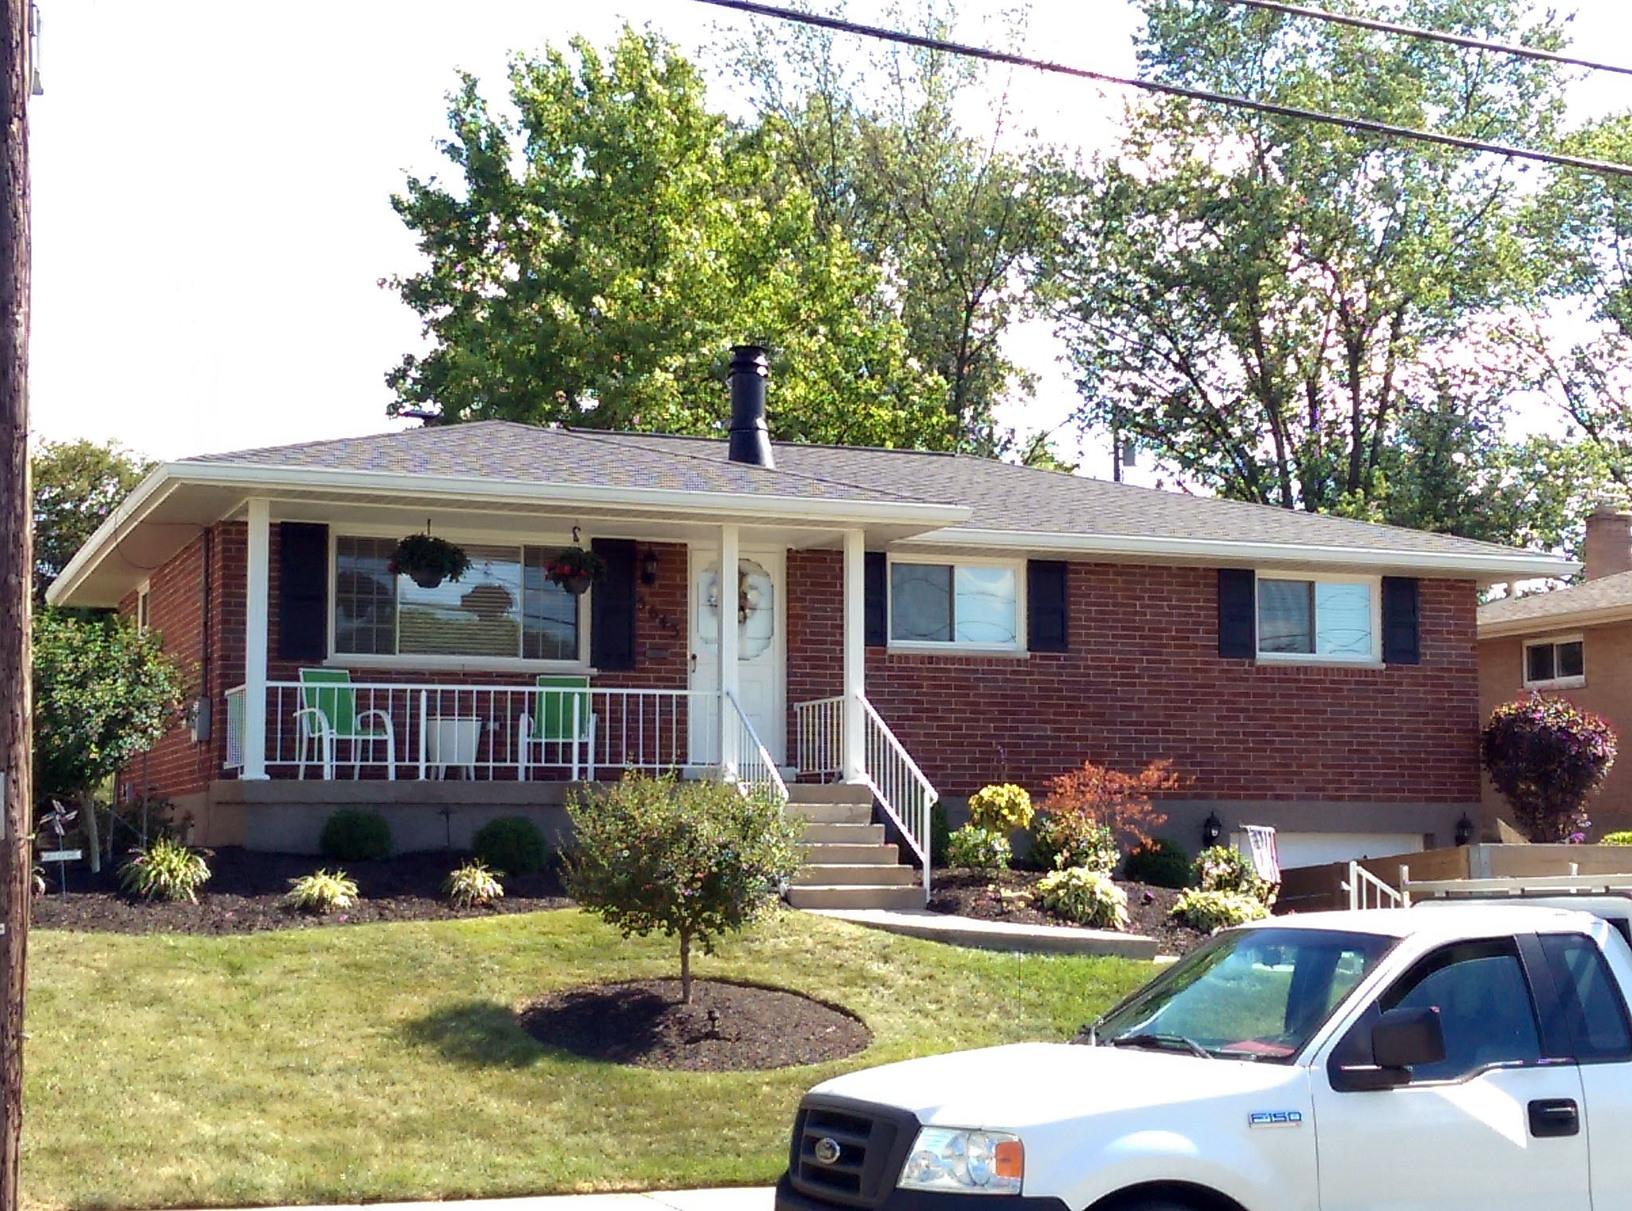 Roof Replacement and Gutter Installation in Cincinnati - After Photo